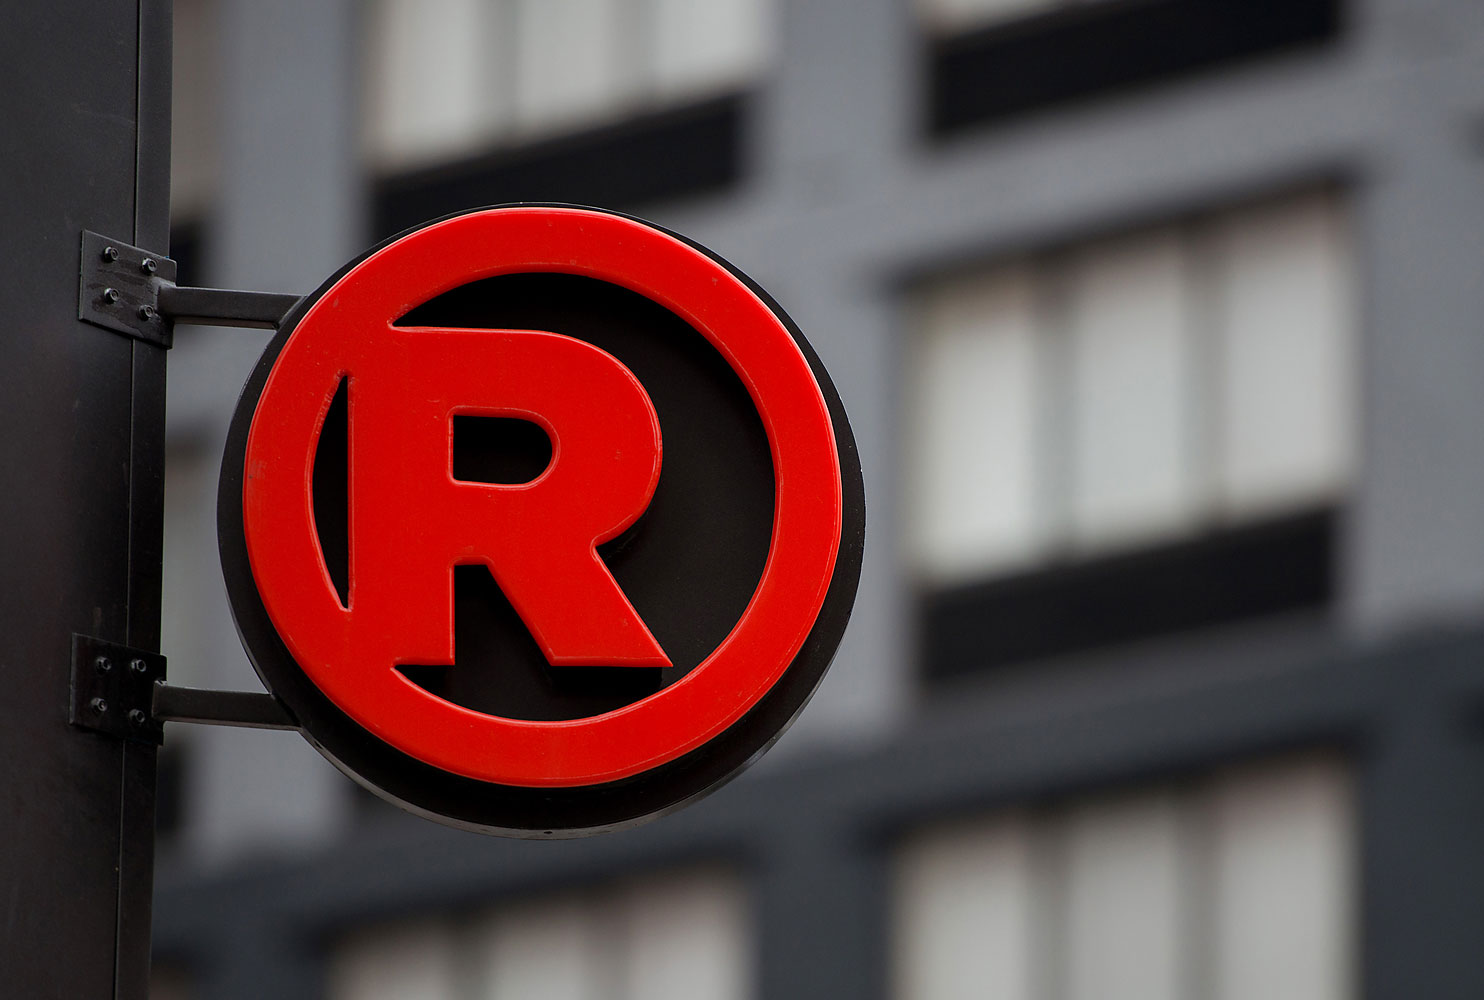 RadioShack Corp. signage is displayed outside of a store in New York, U.S., on Sunday, March 2, 2014. RadioShack Corp. is scheduled to release earnings figures on March 4. Photographer: Craig Warga/Bloomberg via Getty Images